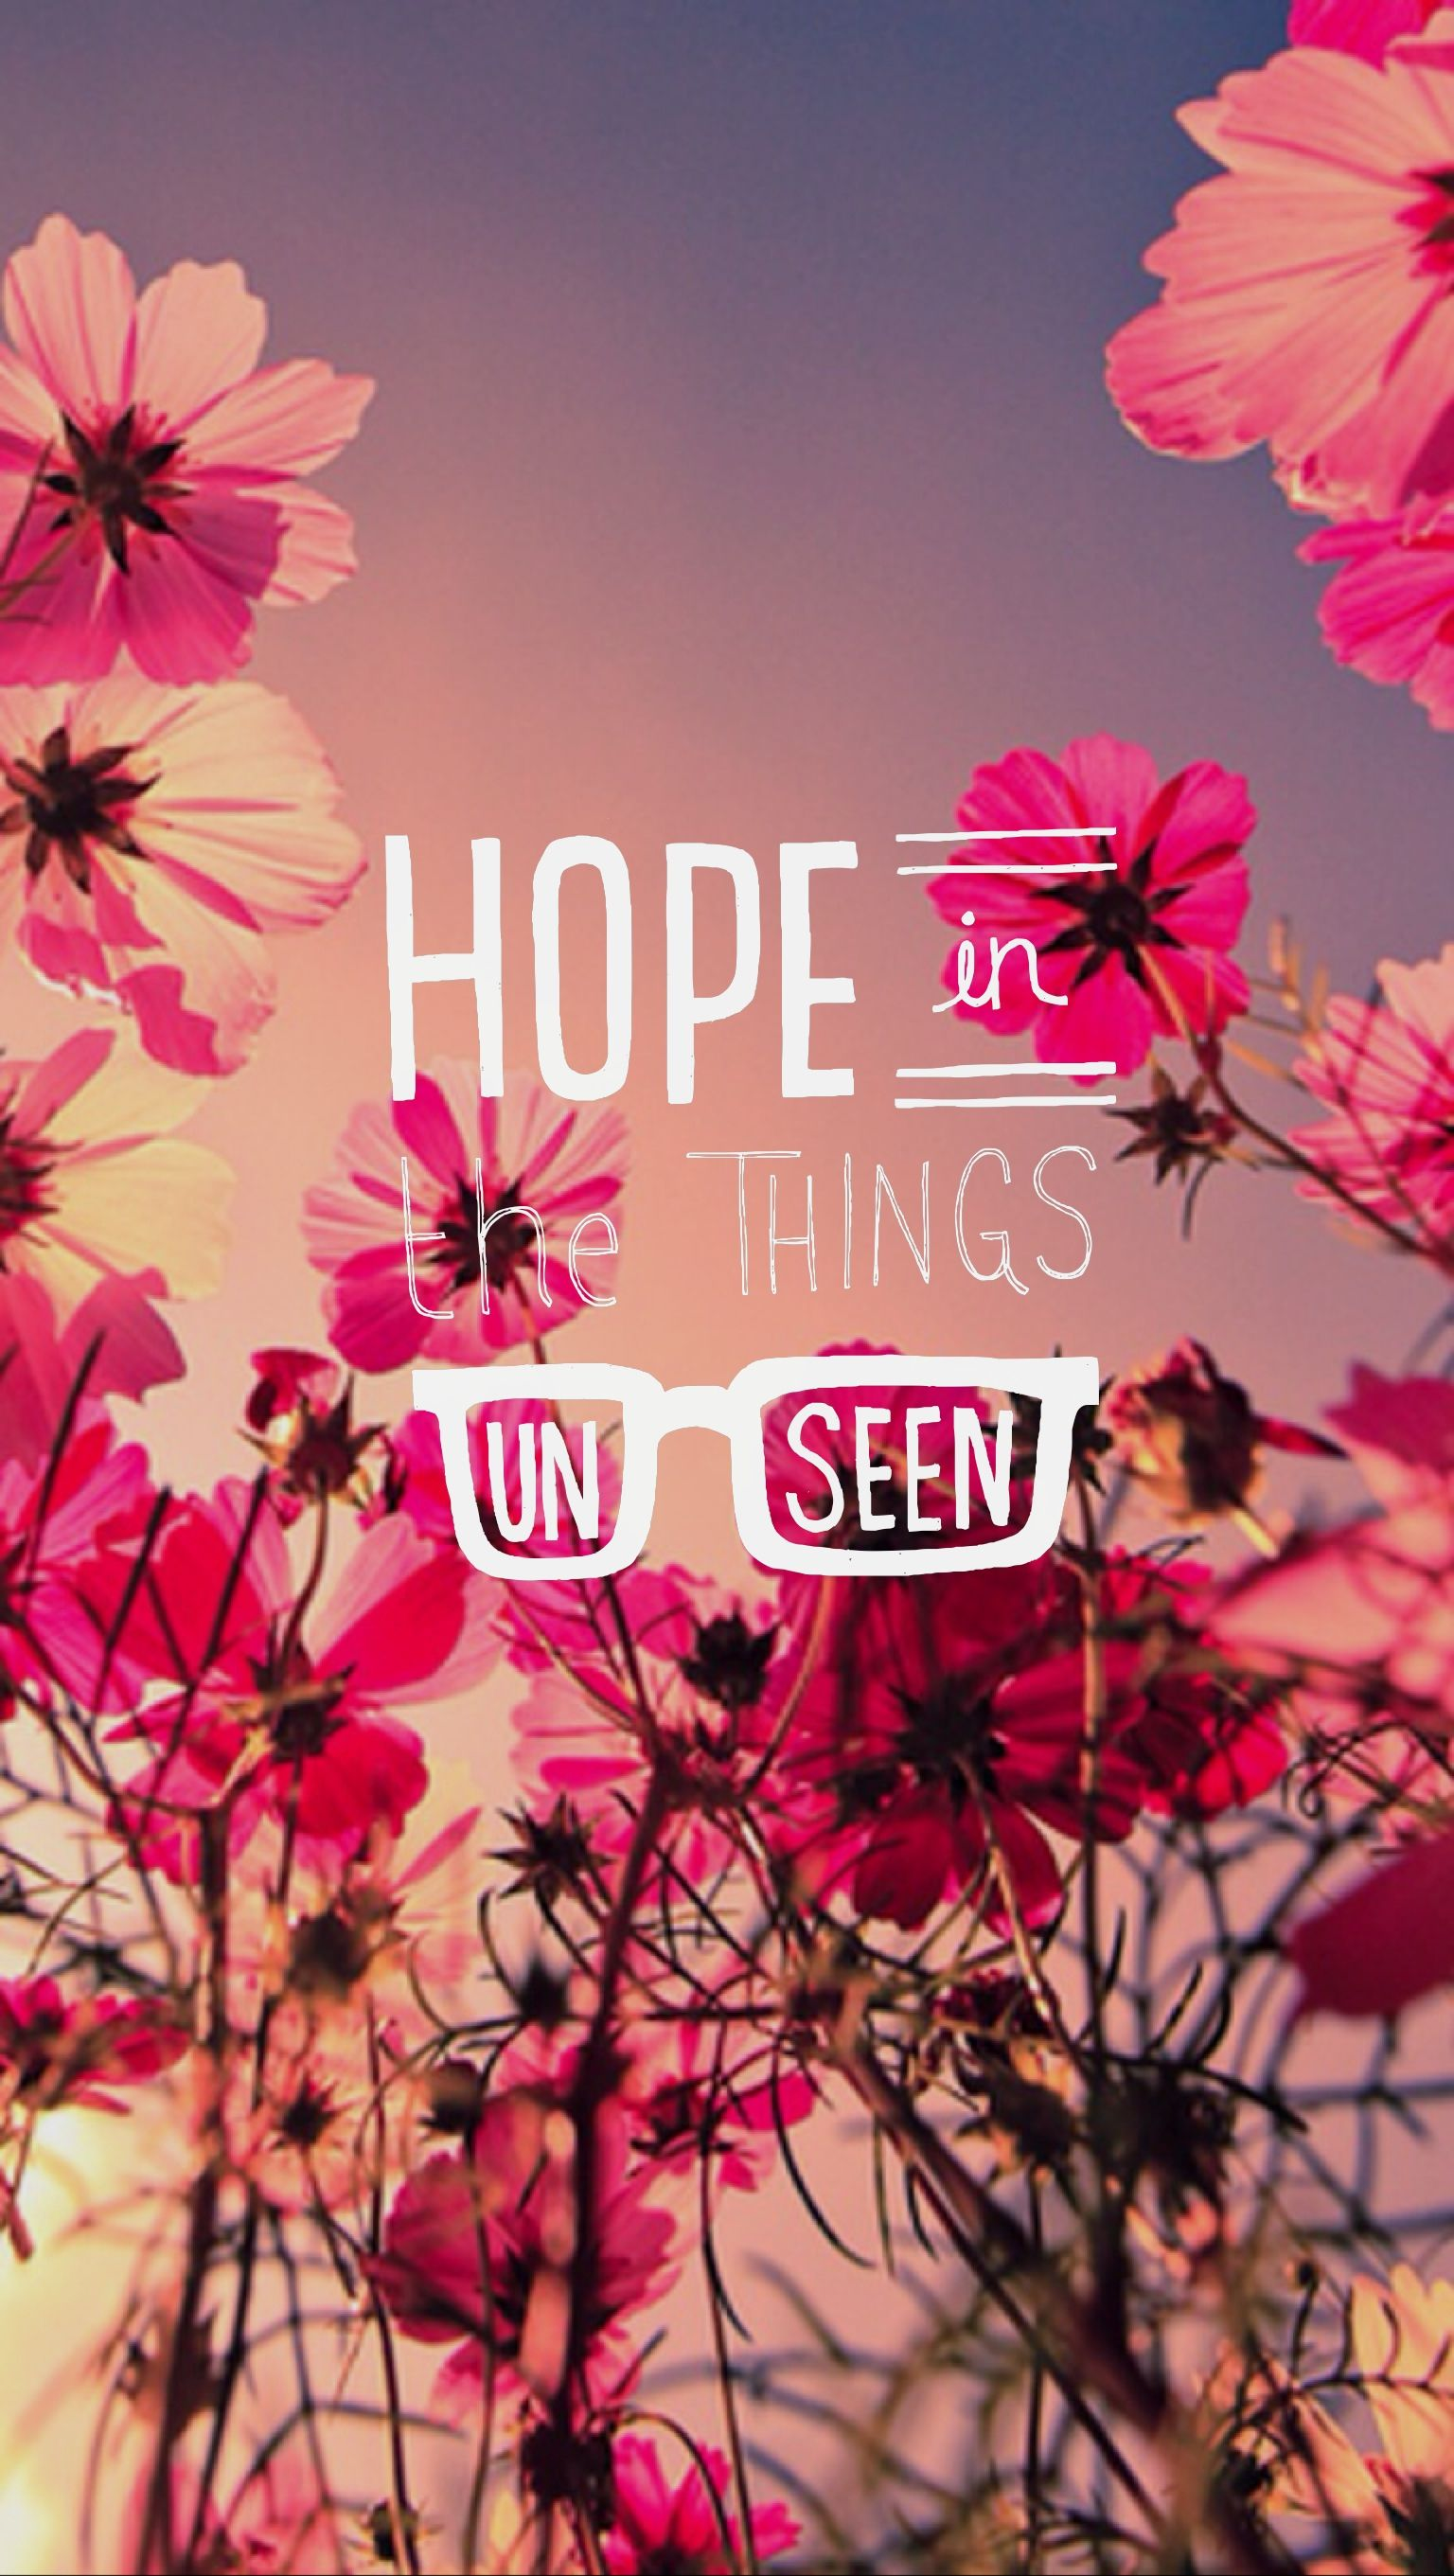 Quote Iphone Wallpaper HD Resolution Its Pink And Have Flowers On It